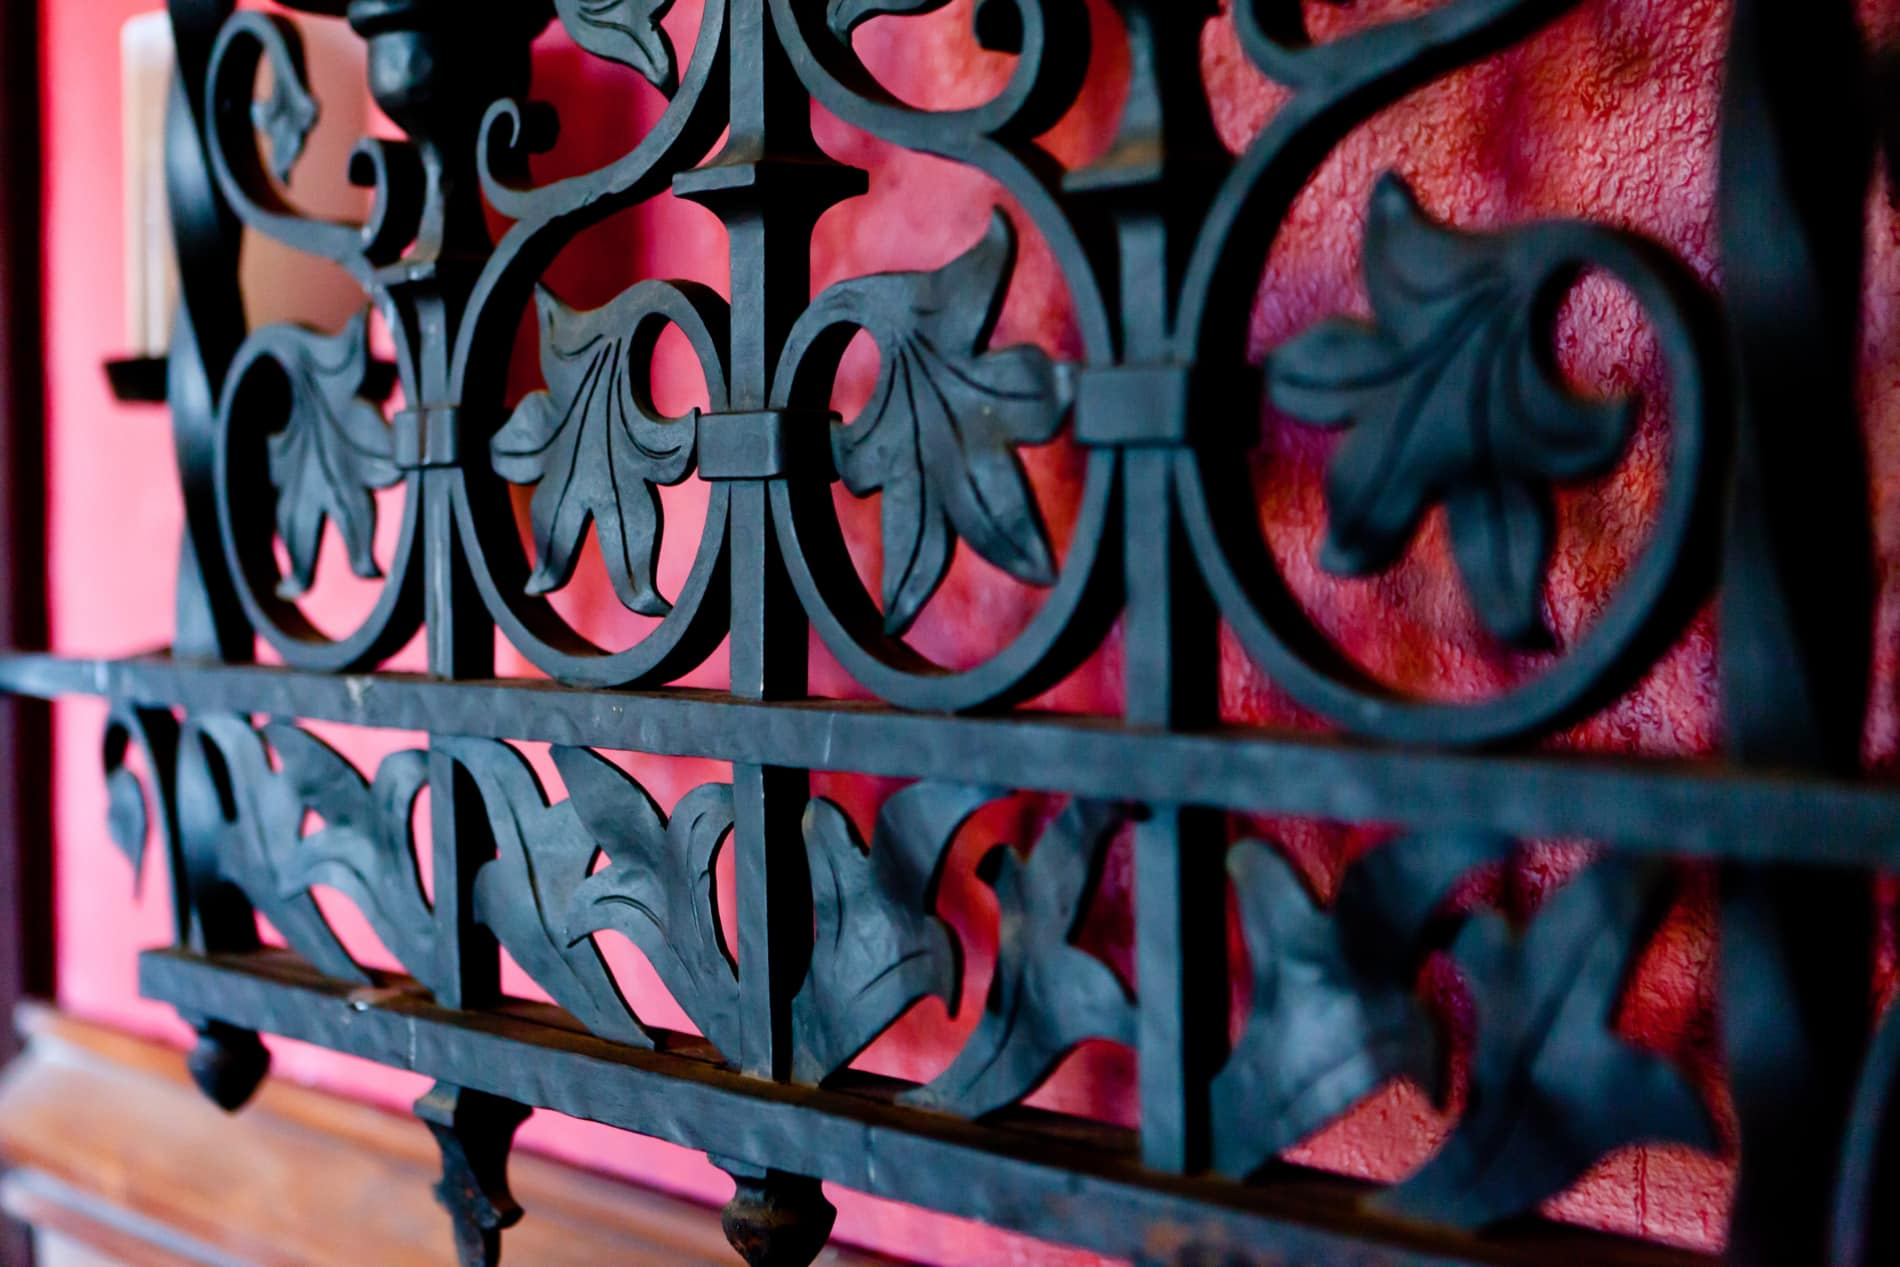 Finely detailed wrought iron grate